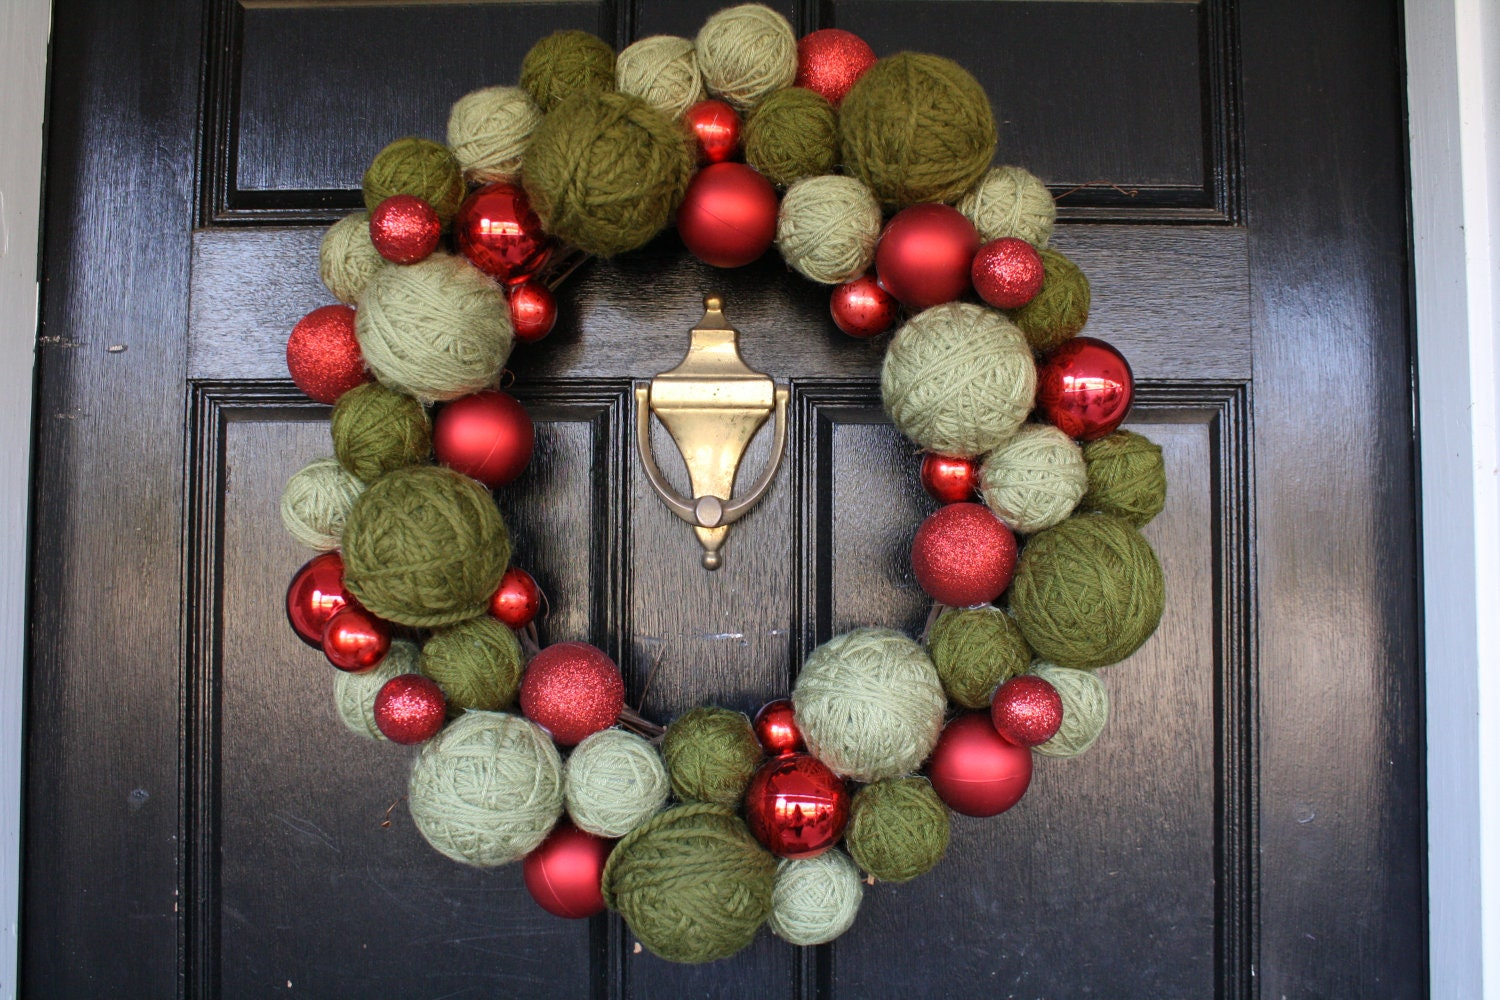 Christmas Wreath Red Christmas balls and green yarn balls on a grapevine wreath